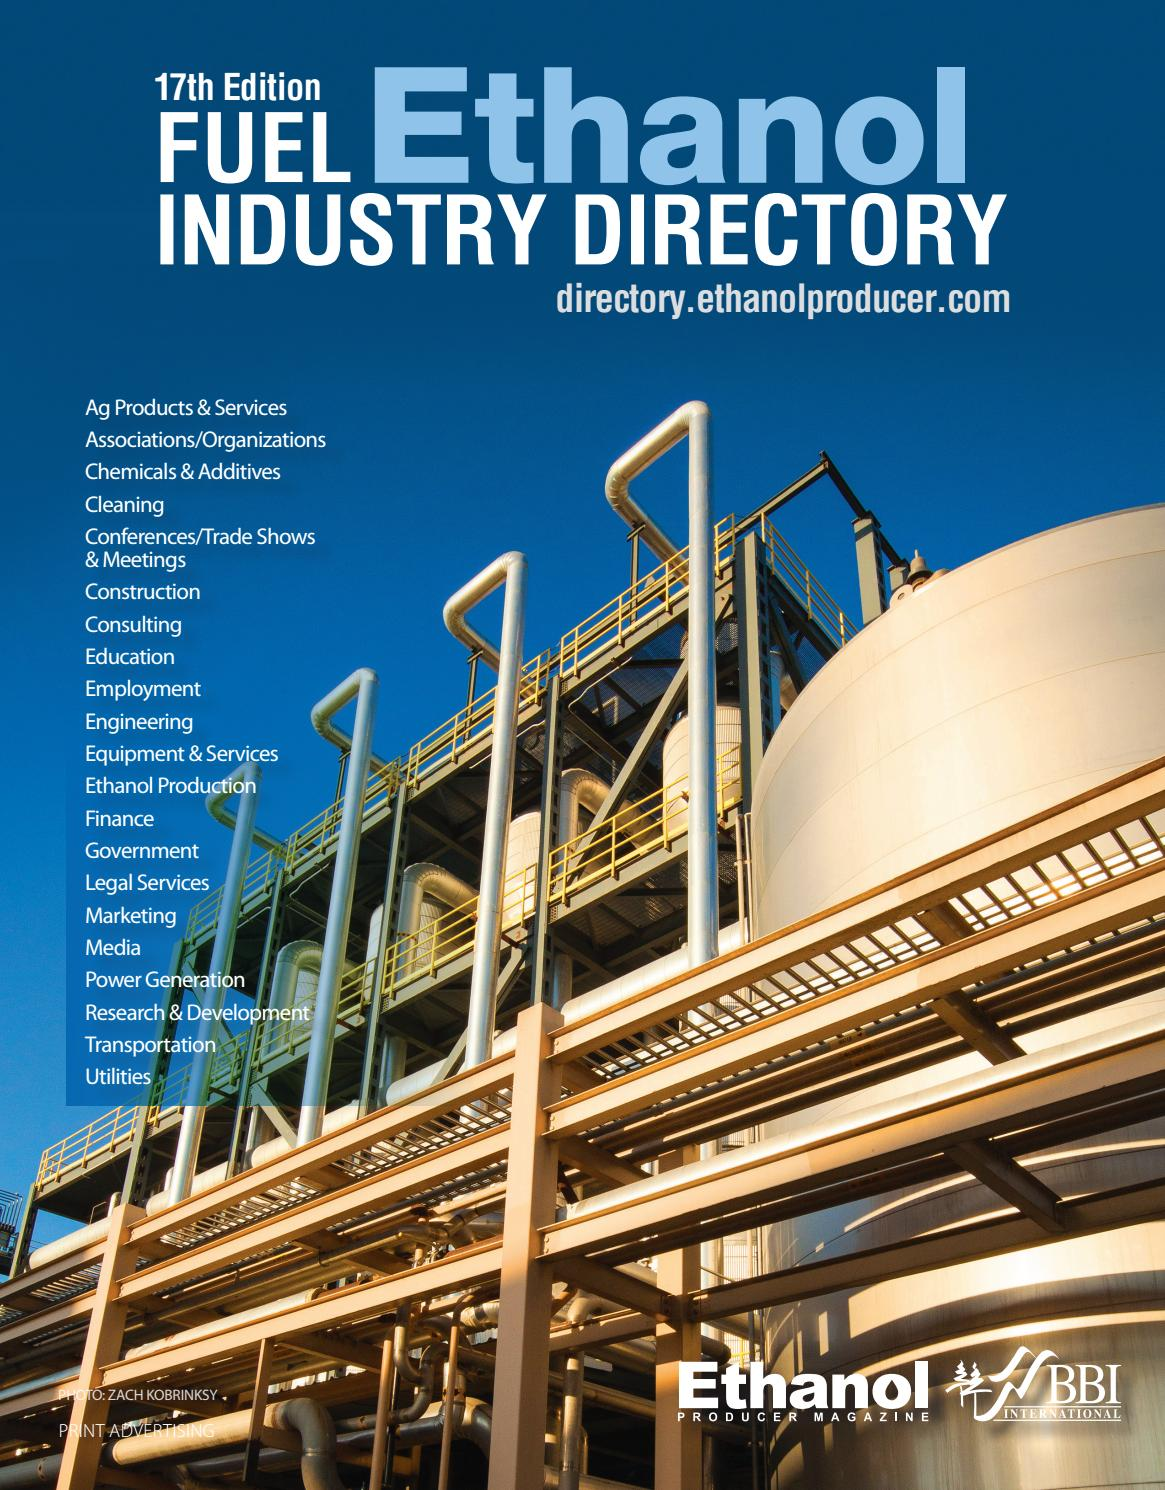 Fuel Ethanol Industry Directory - 2017 - (17th Edition) by